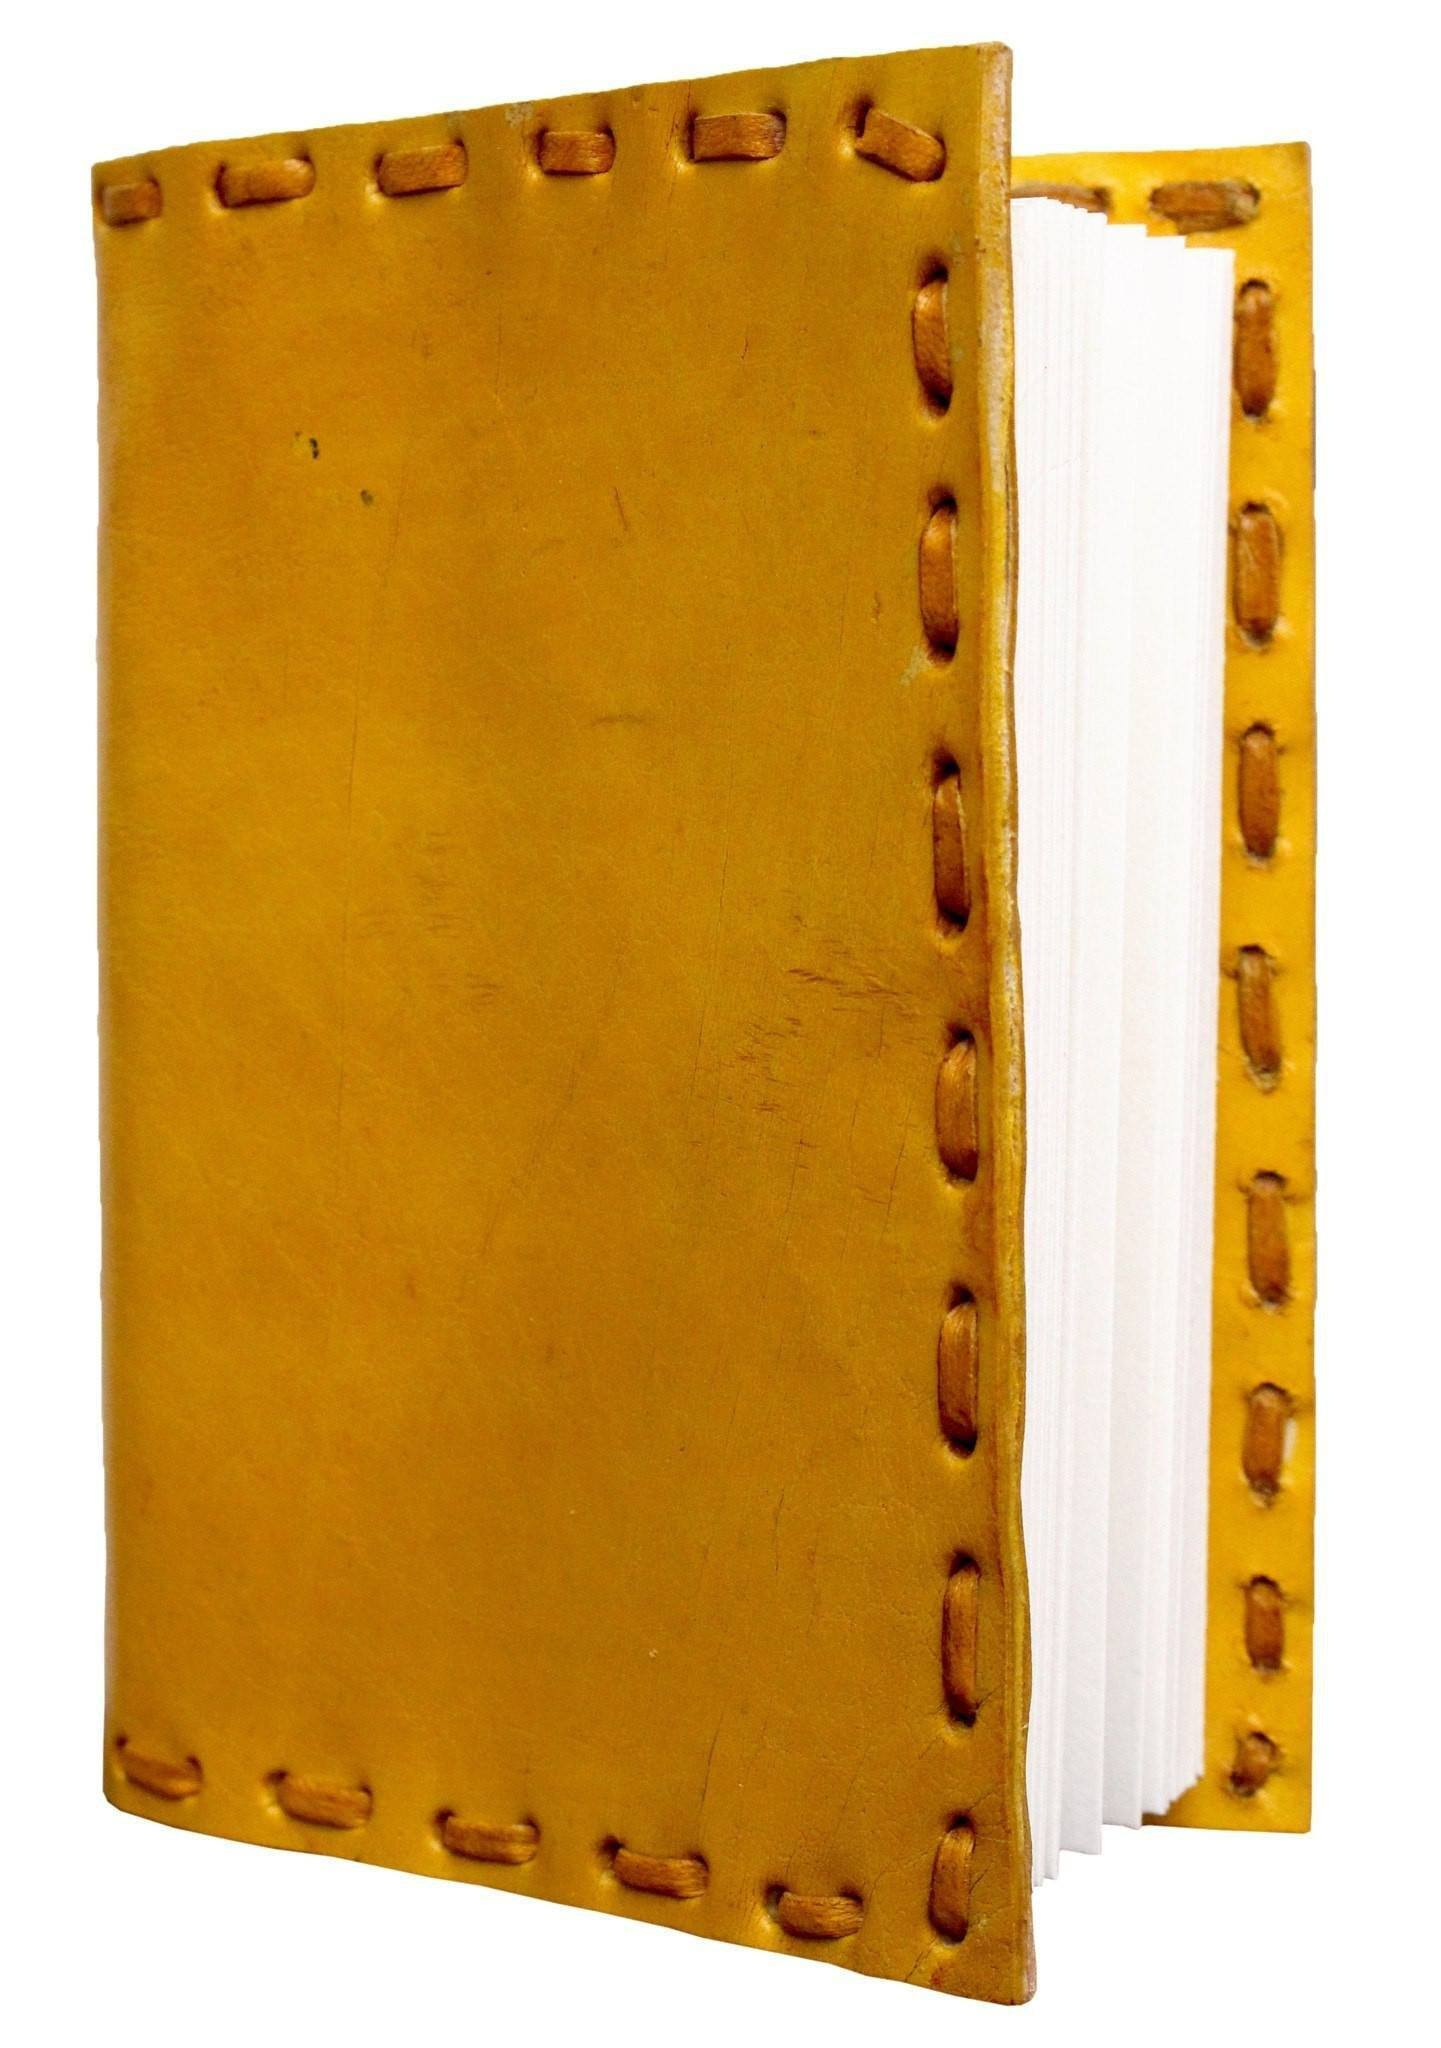 ININDIA Handmade 100% Pure Leather Diary For Office Home Daily Use Without C Lock (All Colors)